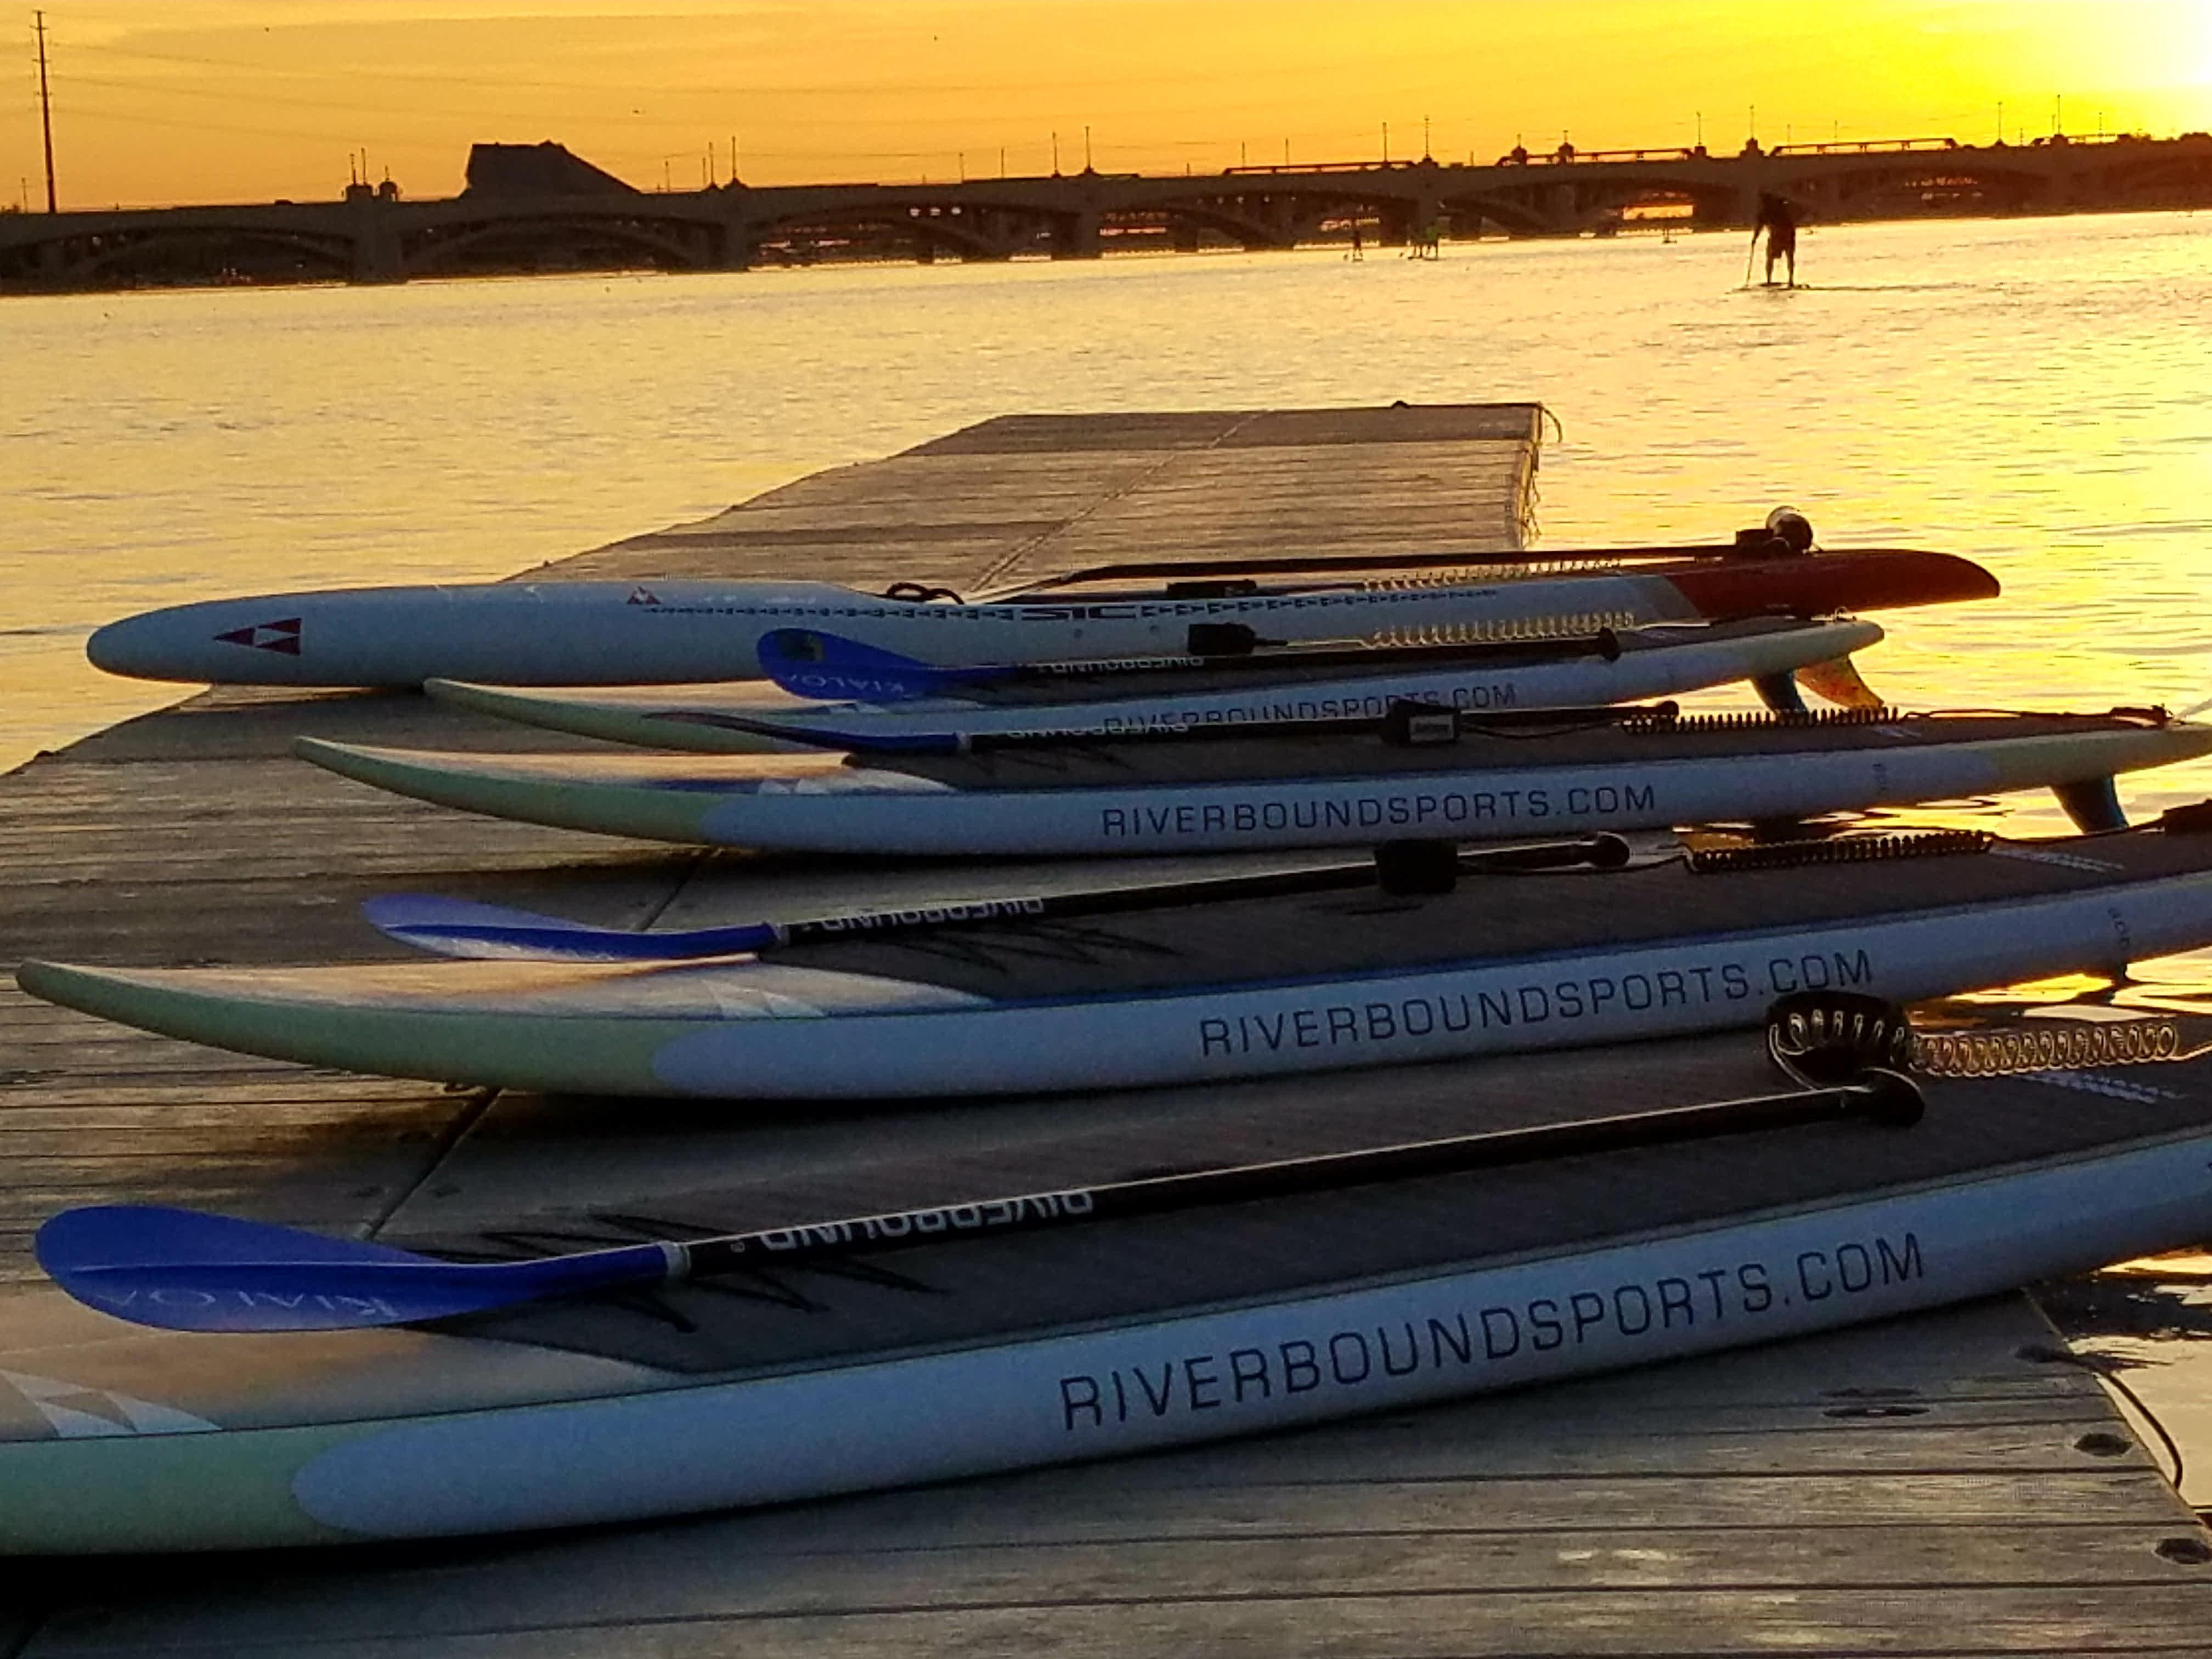 Riverbound Sports Stand Up Paddleboard Shop image 5